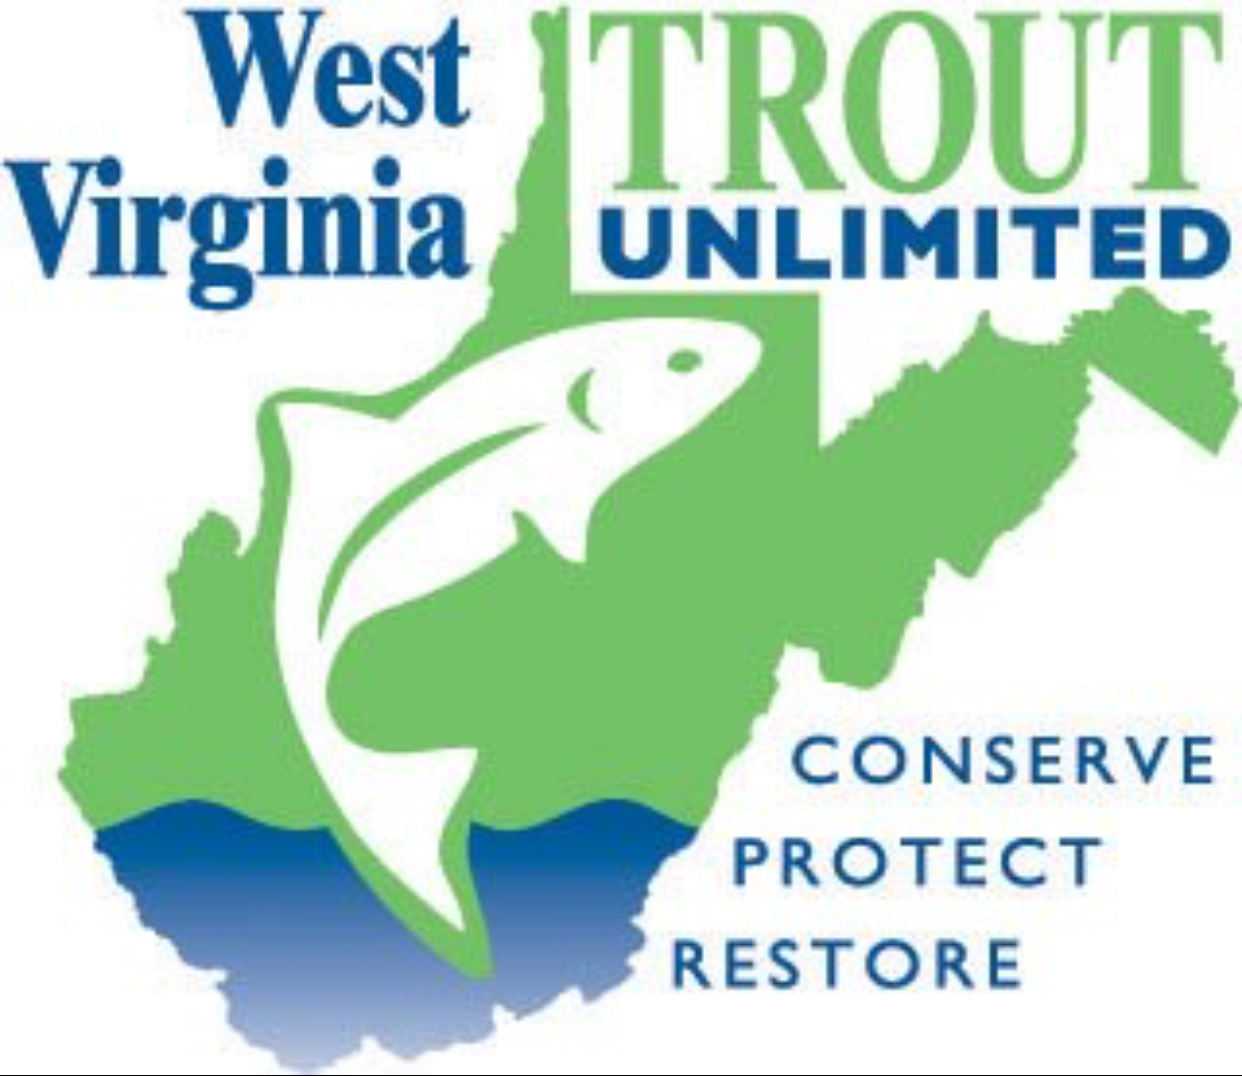 Trout Unlimited - MissionTo conserve, protect and restore North America's cold water fisheries and their watersheds.http://tu.org